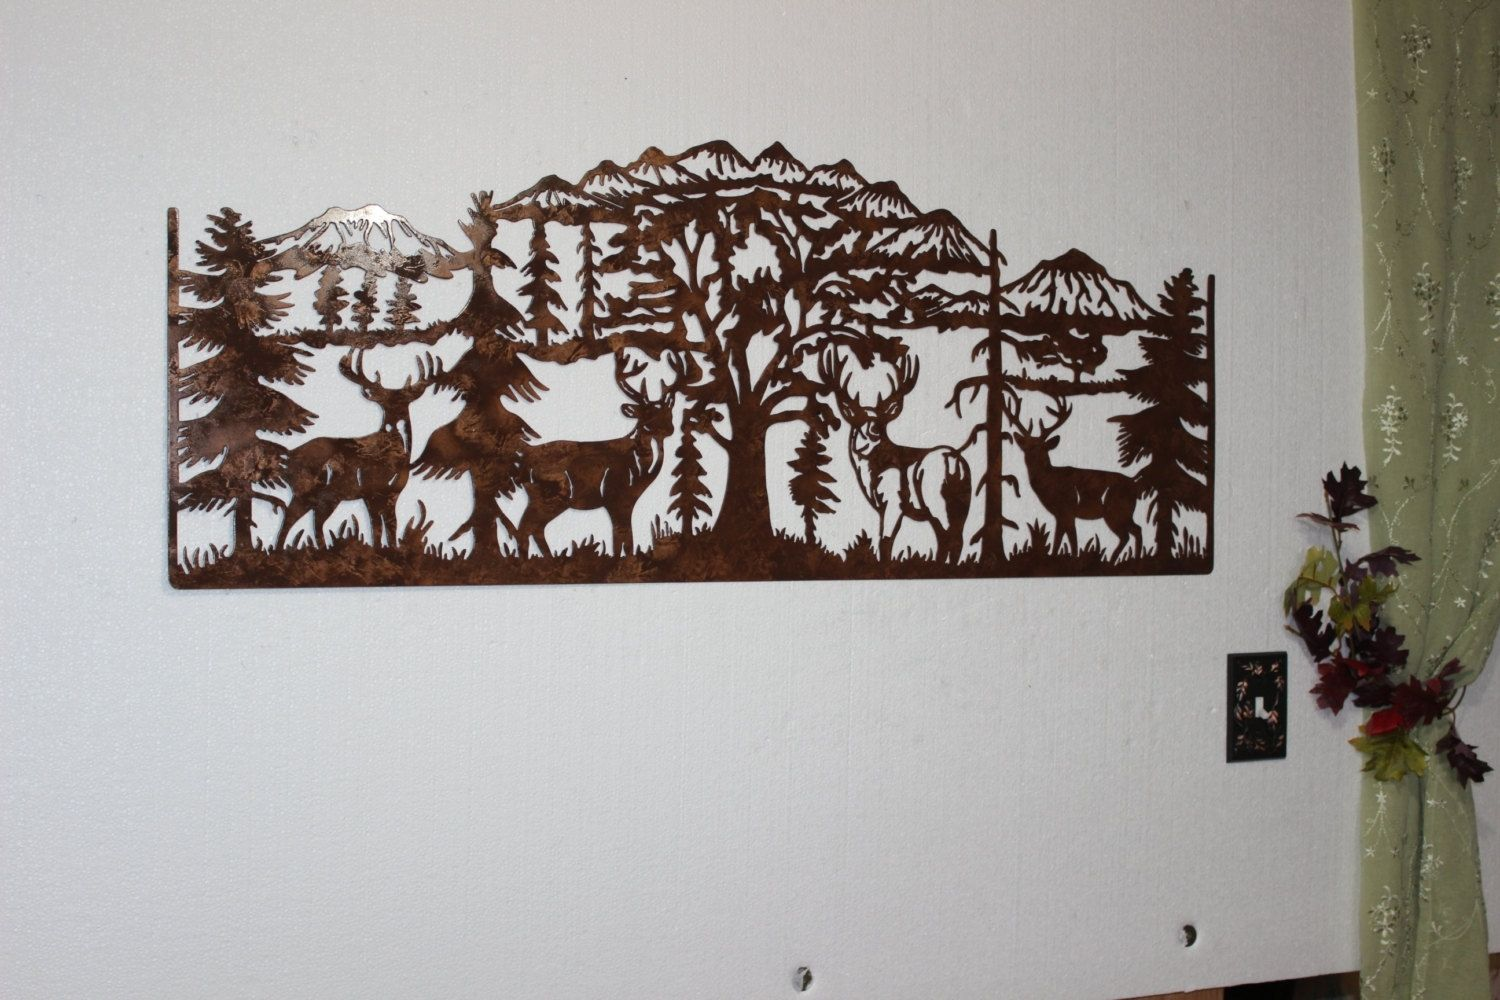 Rustic Wall Decor Custom Hand Crafted Deer And Mountain Scene With 4 Majestic Bucks Large Inspiration